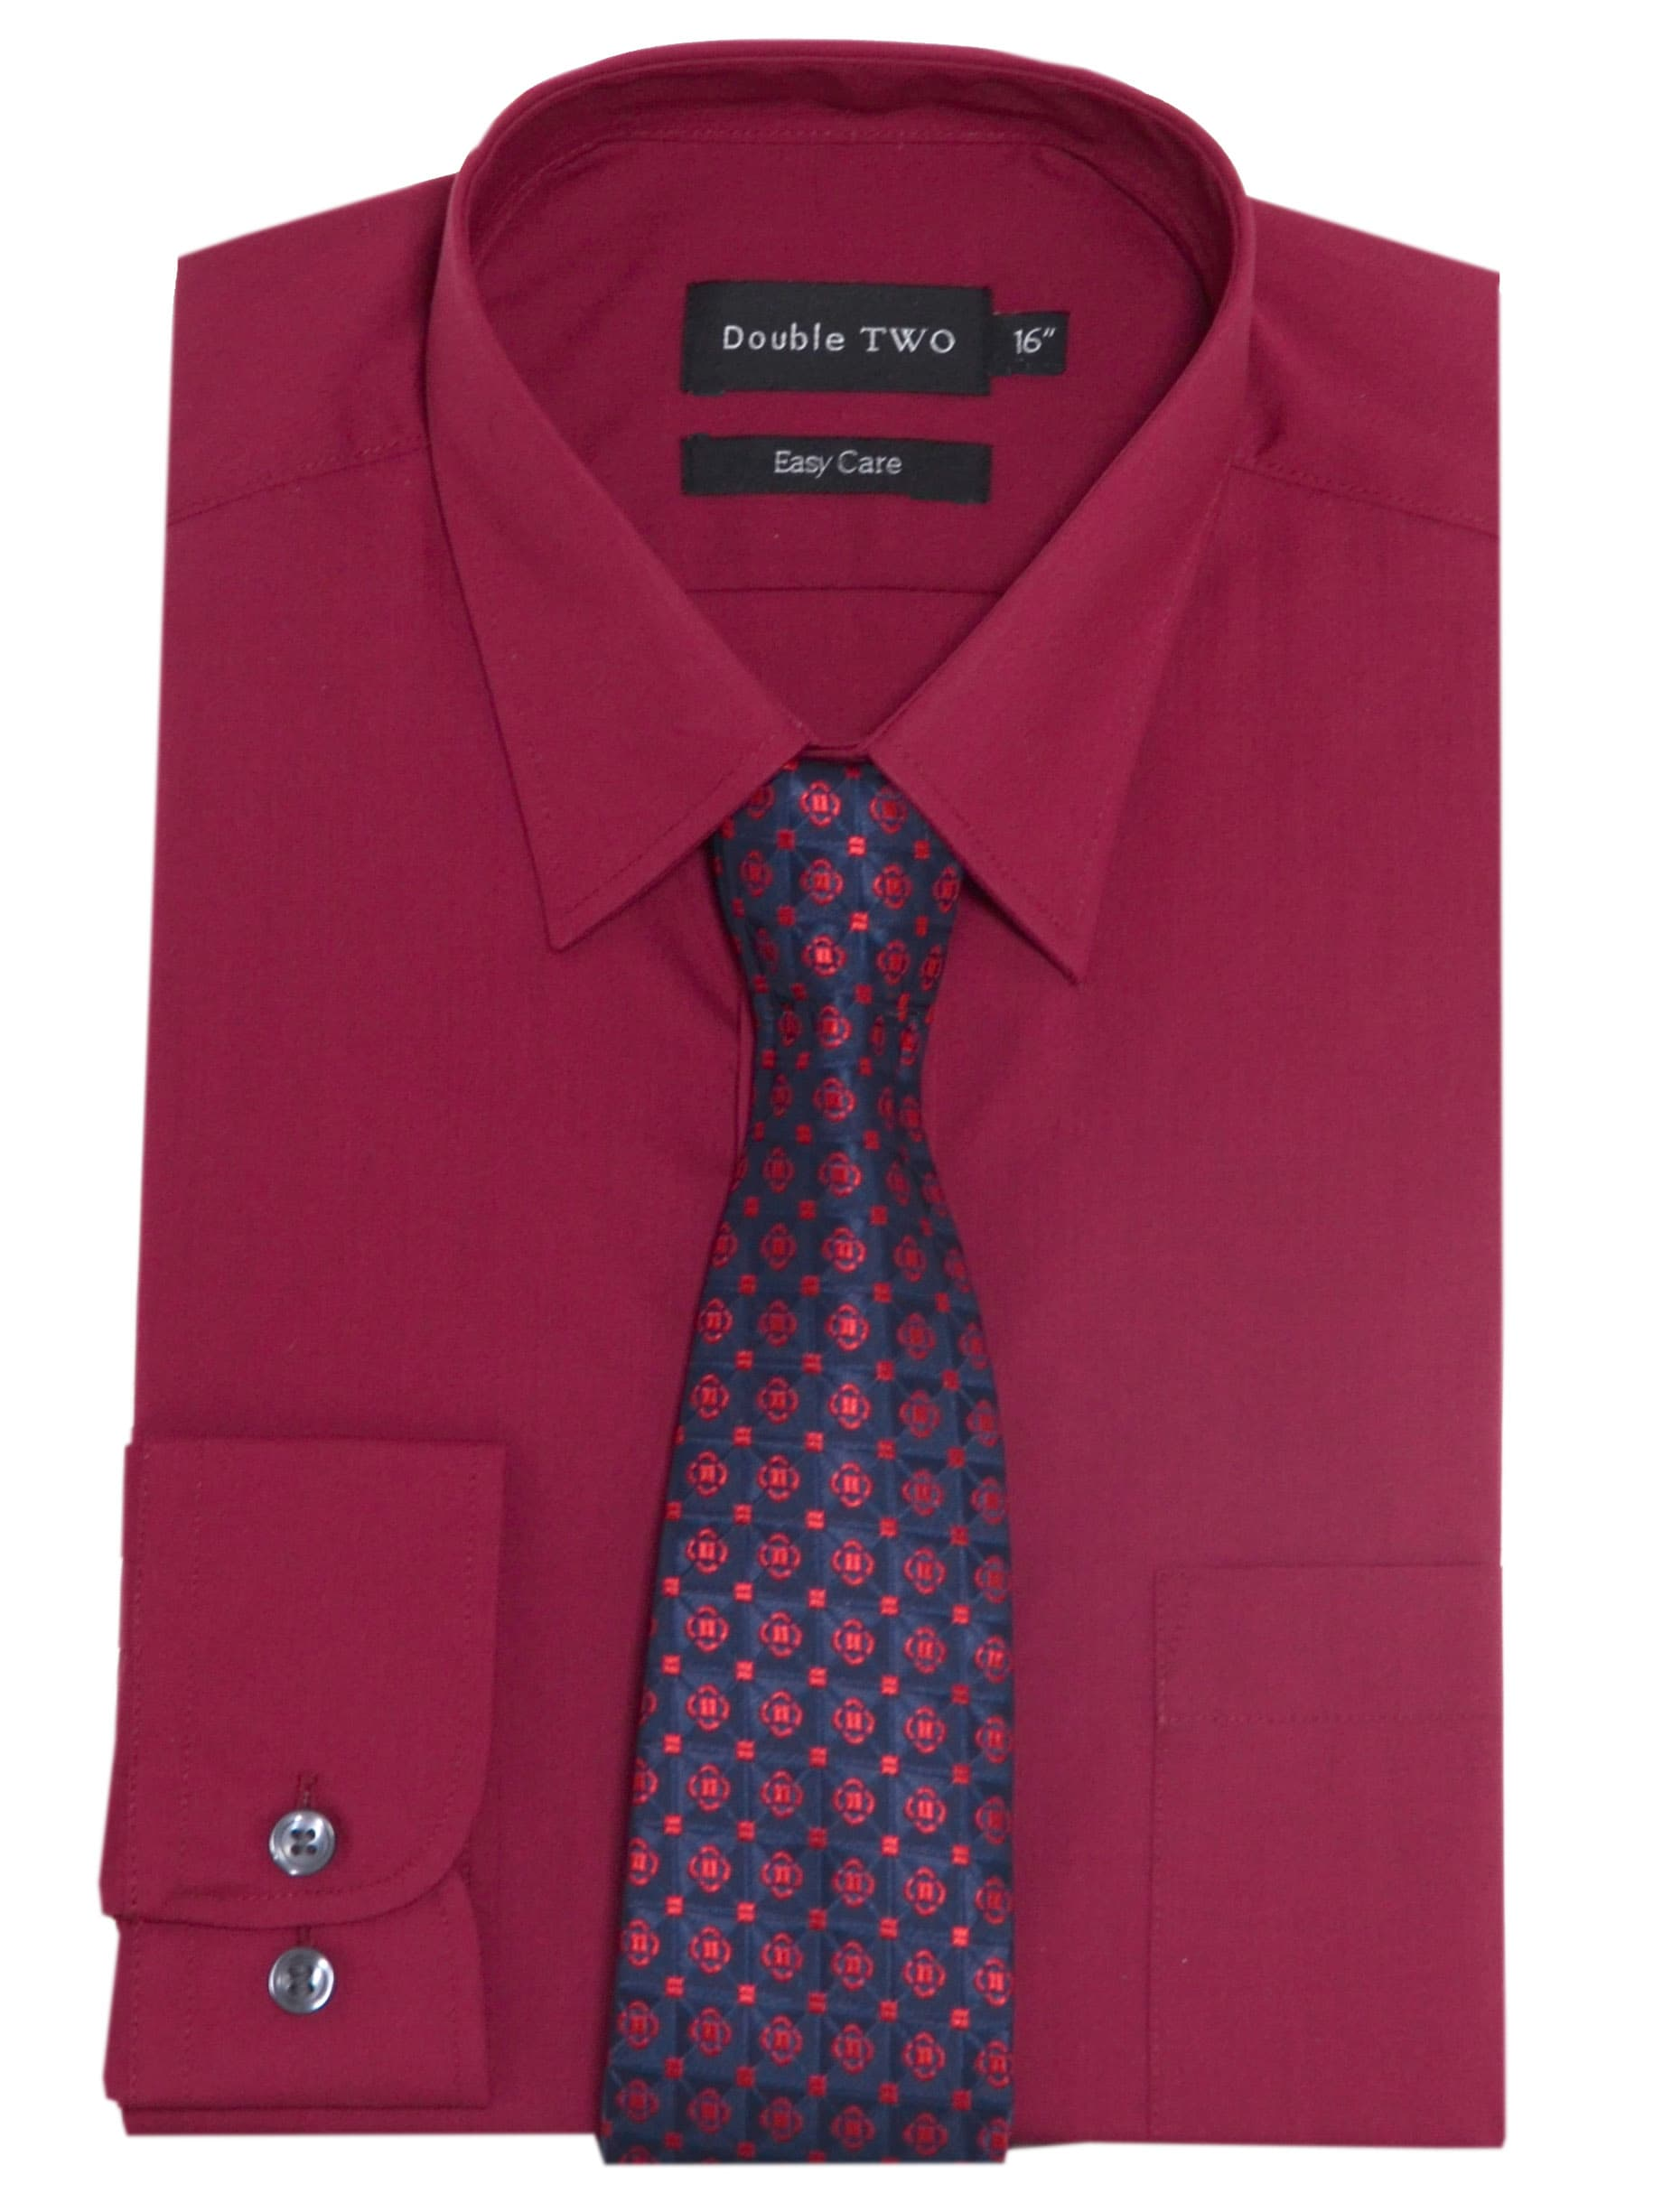 double two plain burgundy formal shirt and tie set